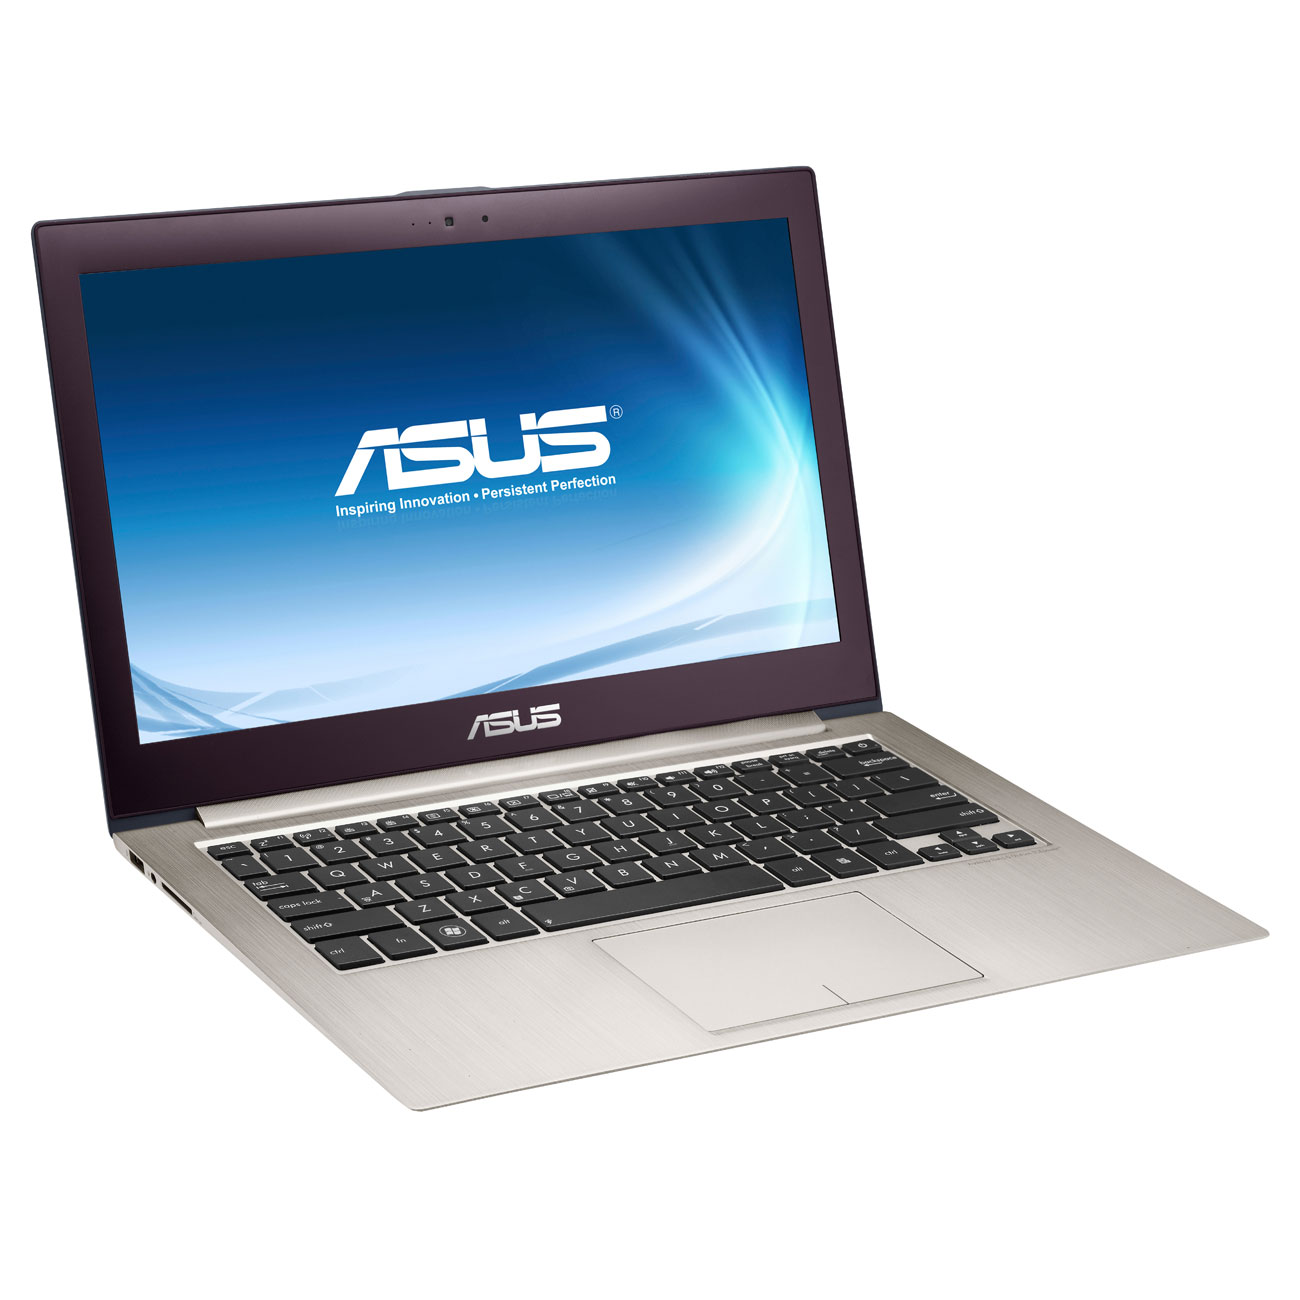 "PC portable ASUS ZenBook Prime UX31A-R4005X Intel Core i5-3317U 4 Go SSD 128 Go 13.3"" LED Wi-Fi N/Bluetooth Webcam Windows 7 Professionnel 64 bits (garantie constructeur 2 ans)"